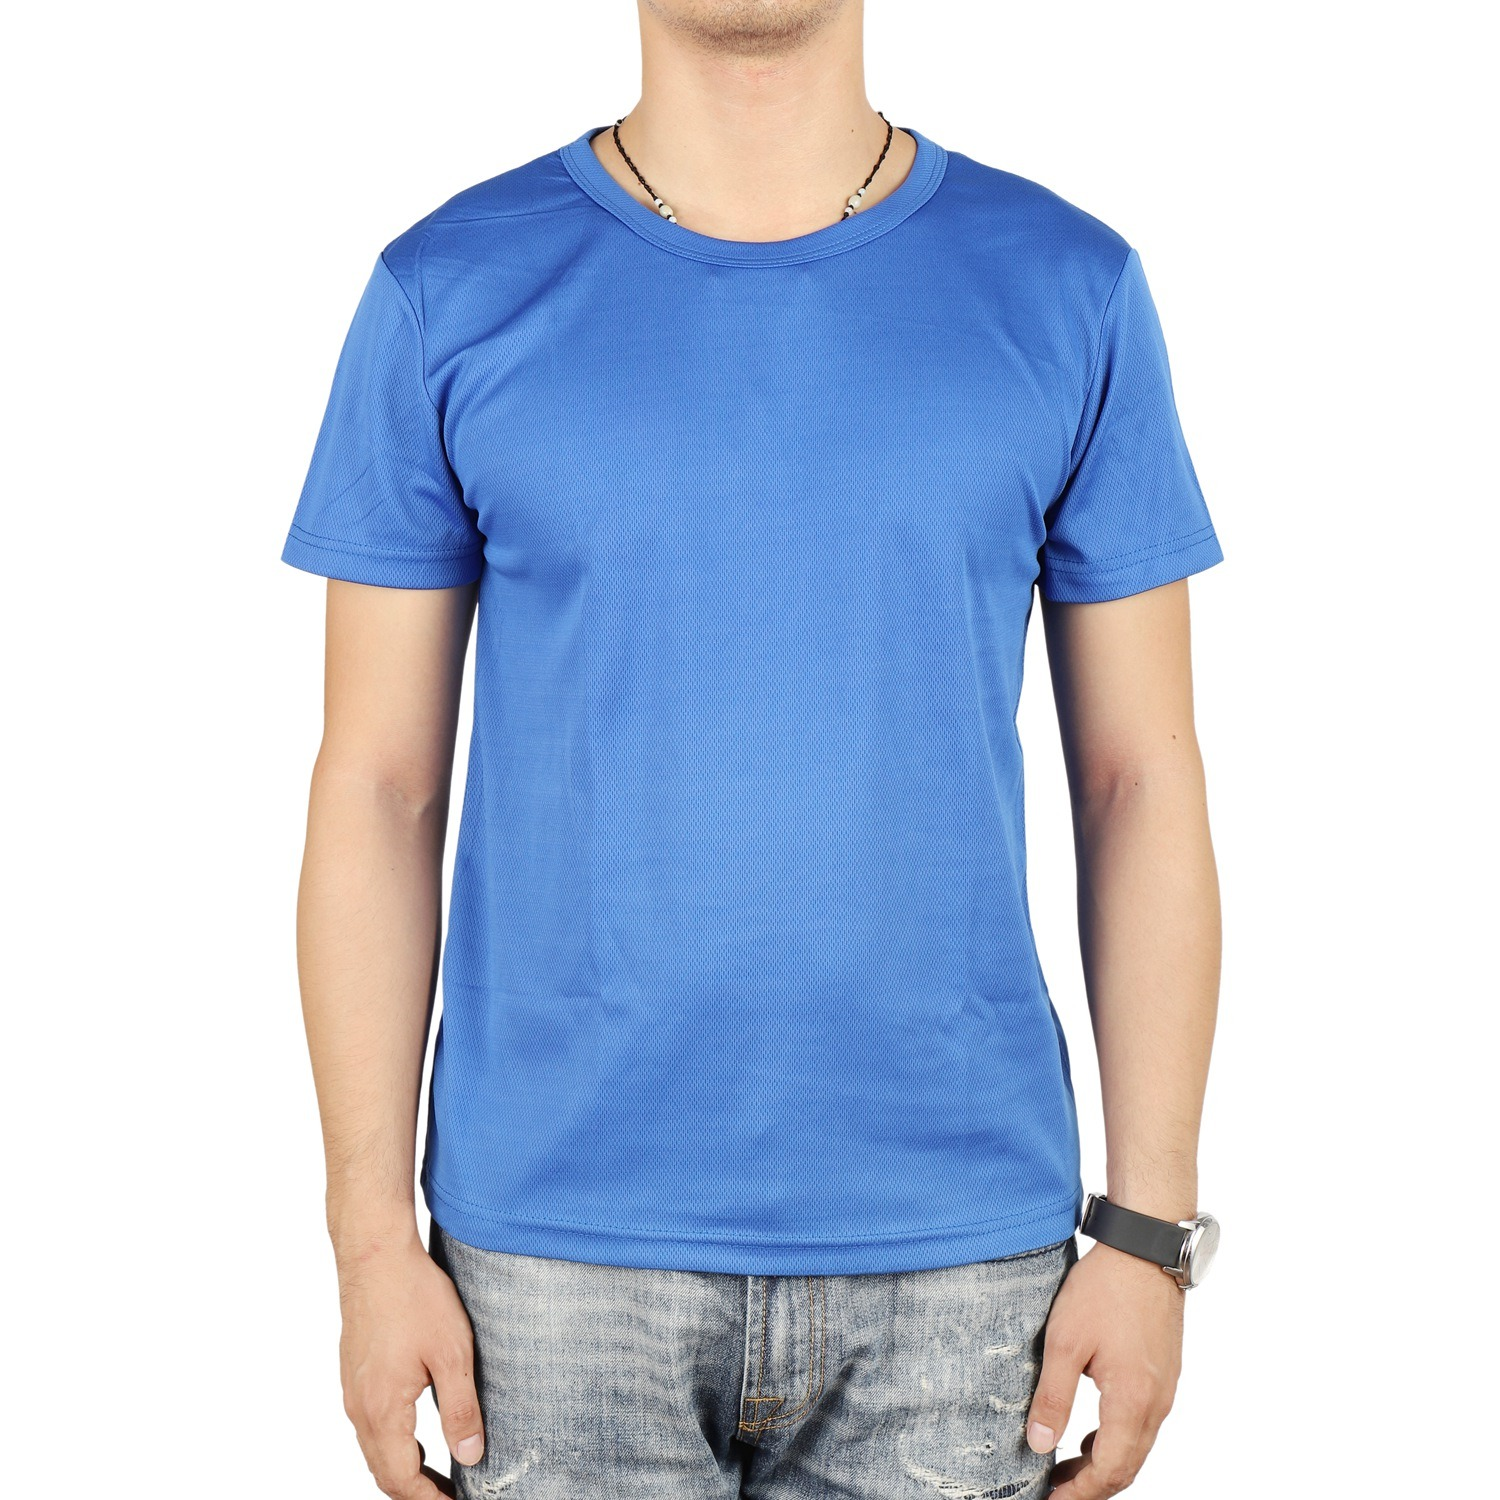 China Promotional Customized Basic Election T Shirts With Cheap